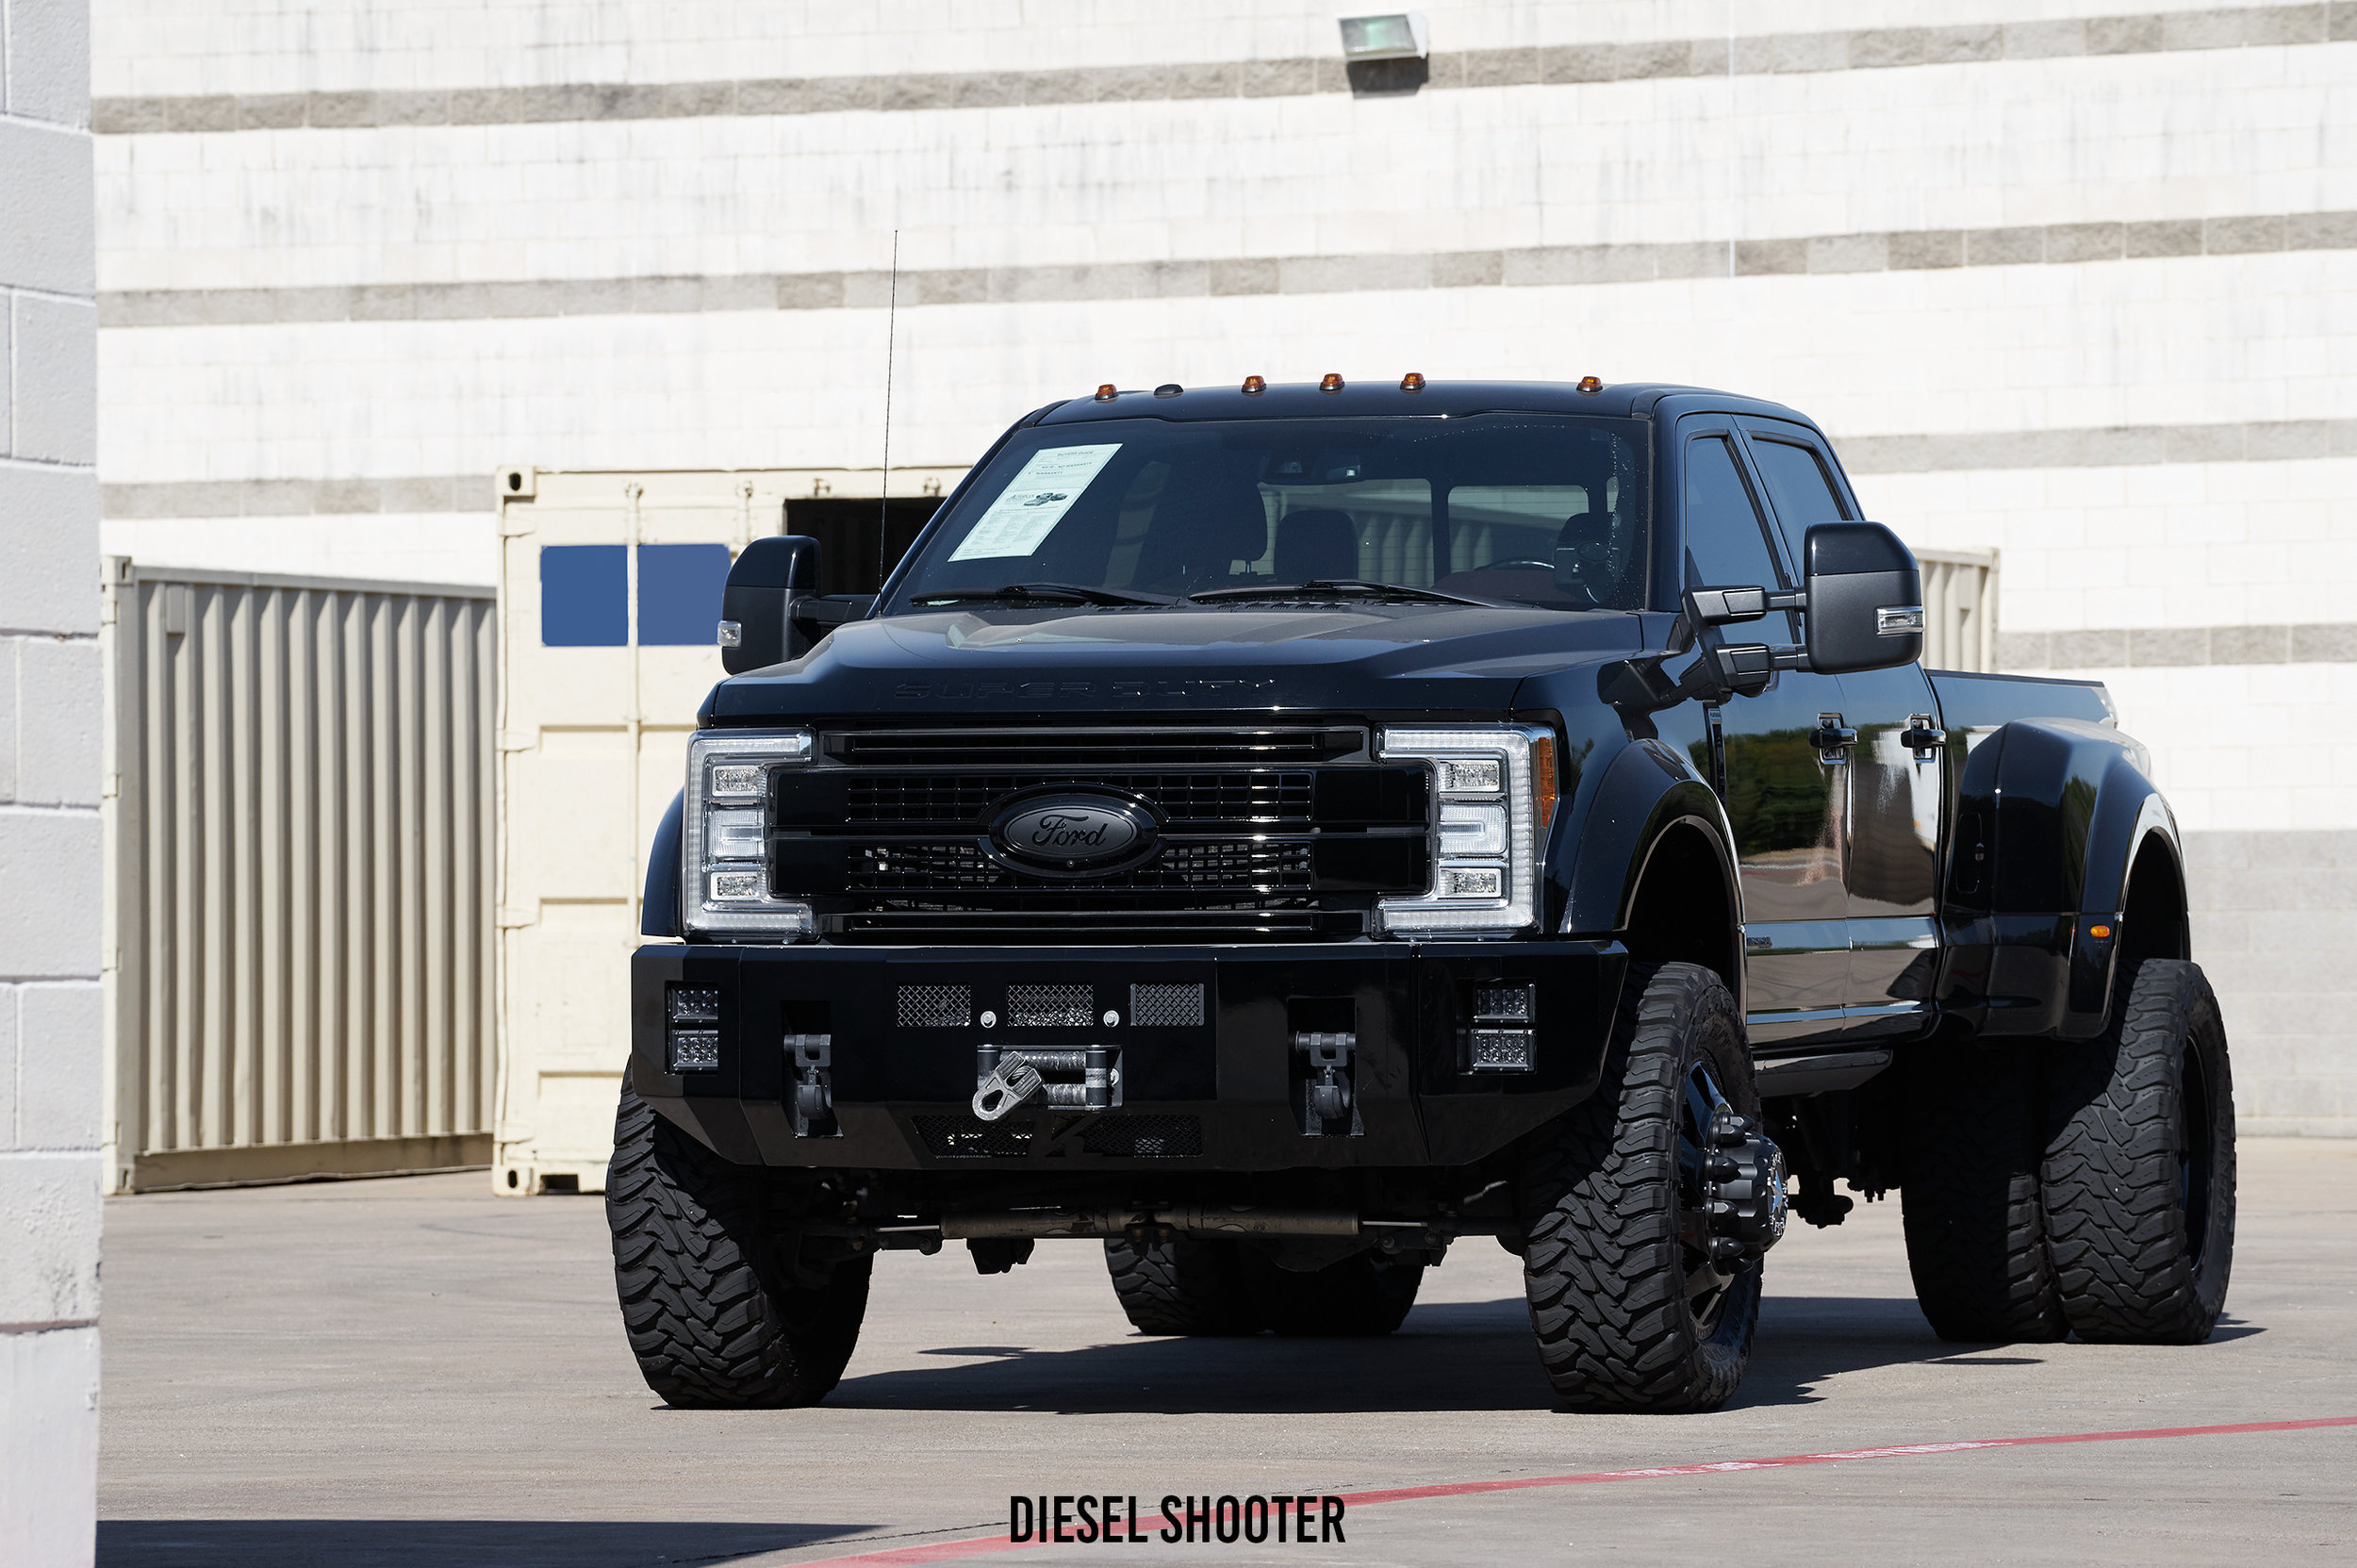 Lifted Trucks For Sale In Texas >> 2017 Ford F250 Platinum - Fuel Off-Road - FTS — Diesel Shooter